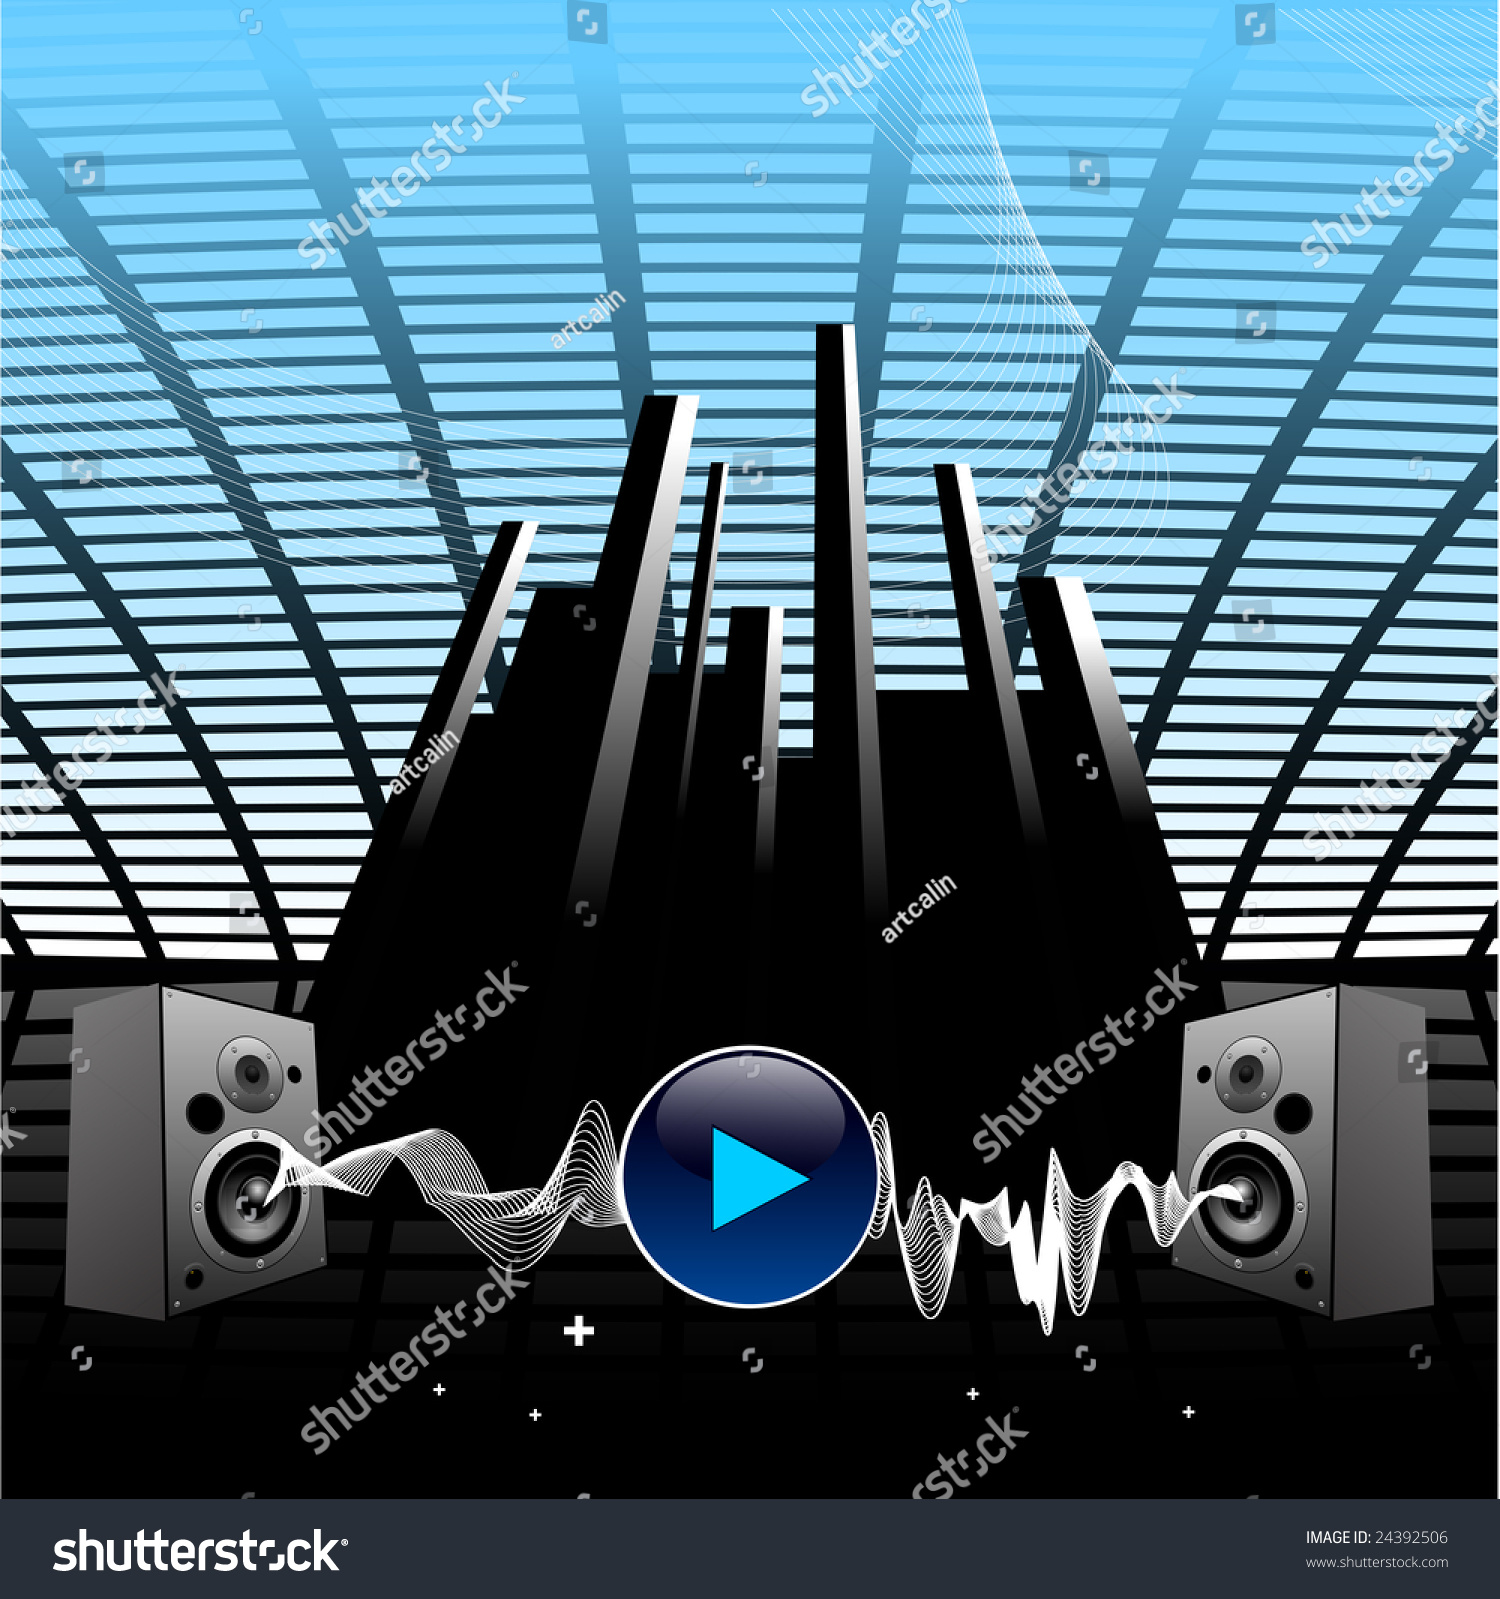 HI tech vector music wallpaper with sound waves. Audio speakers, blue  colors.